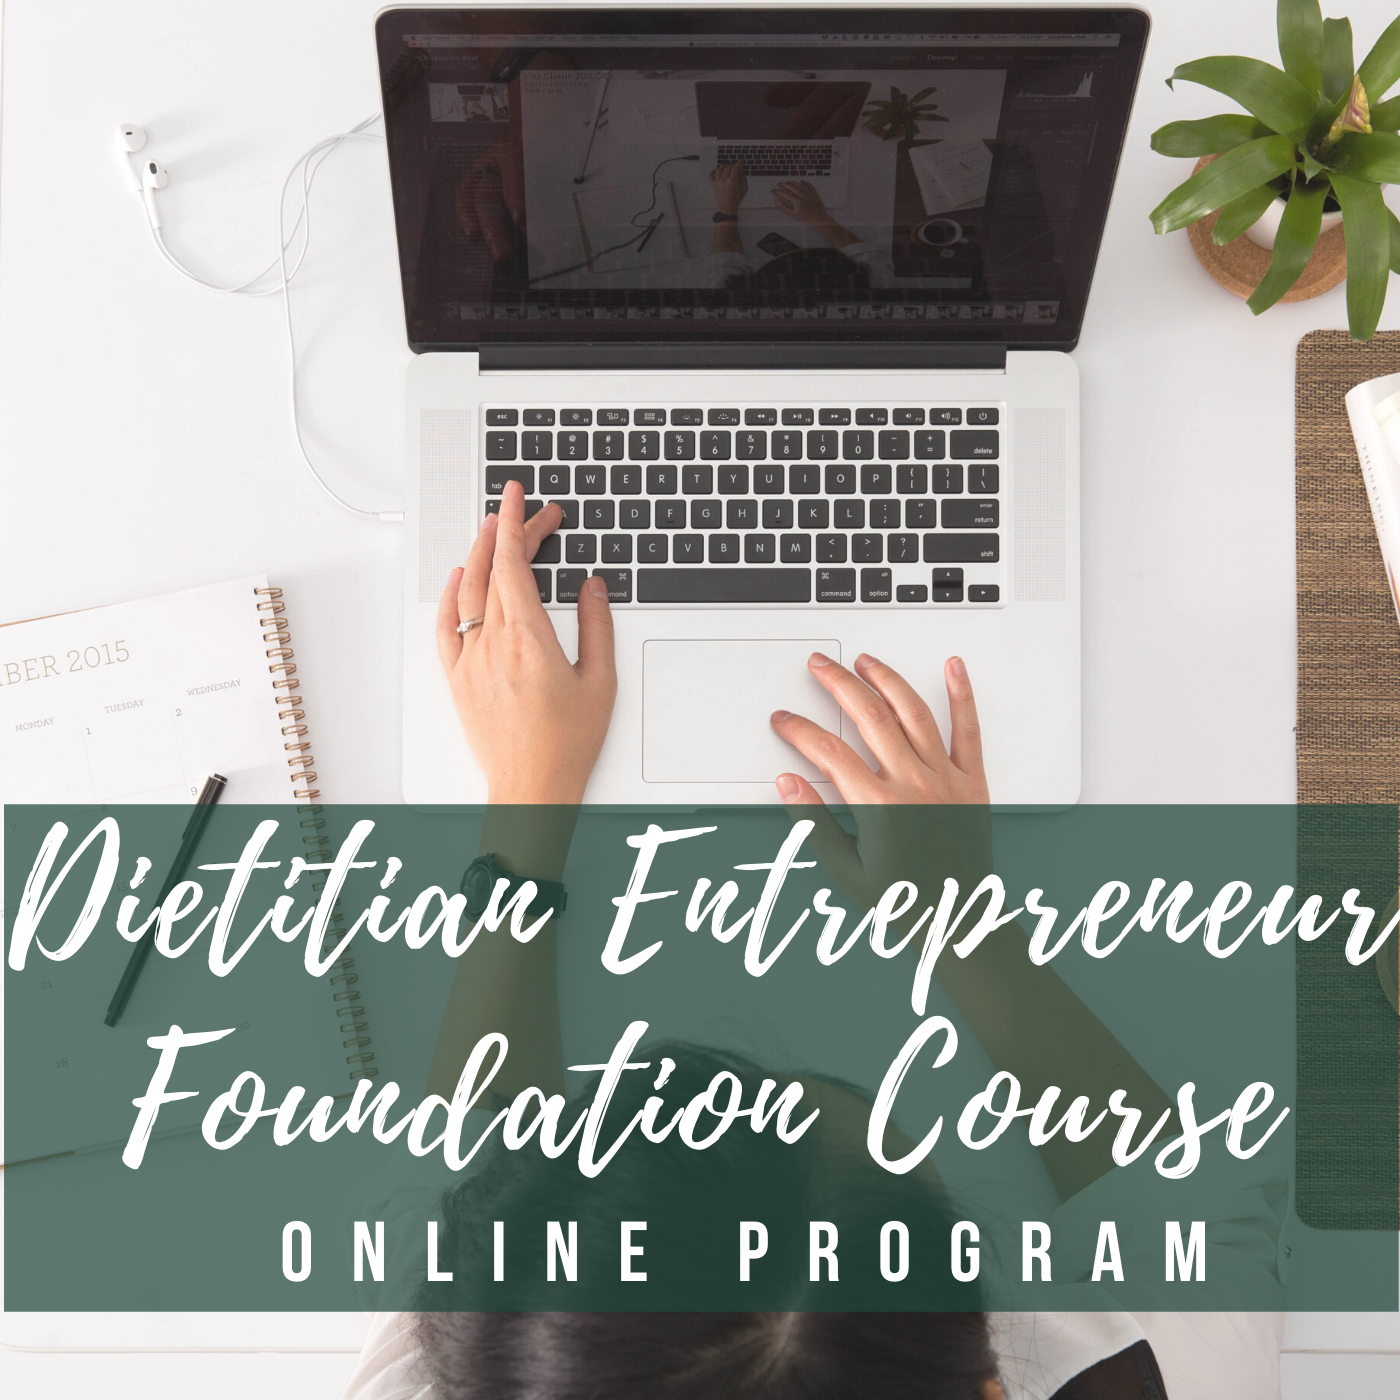 Dietitian entrepreneur training course